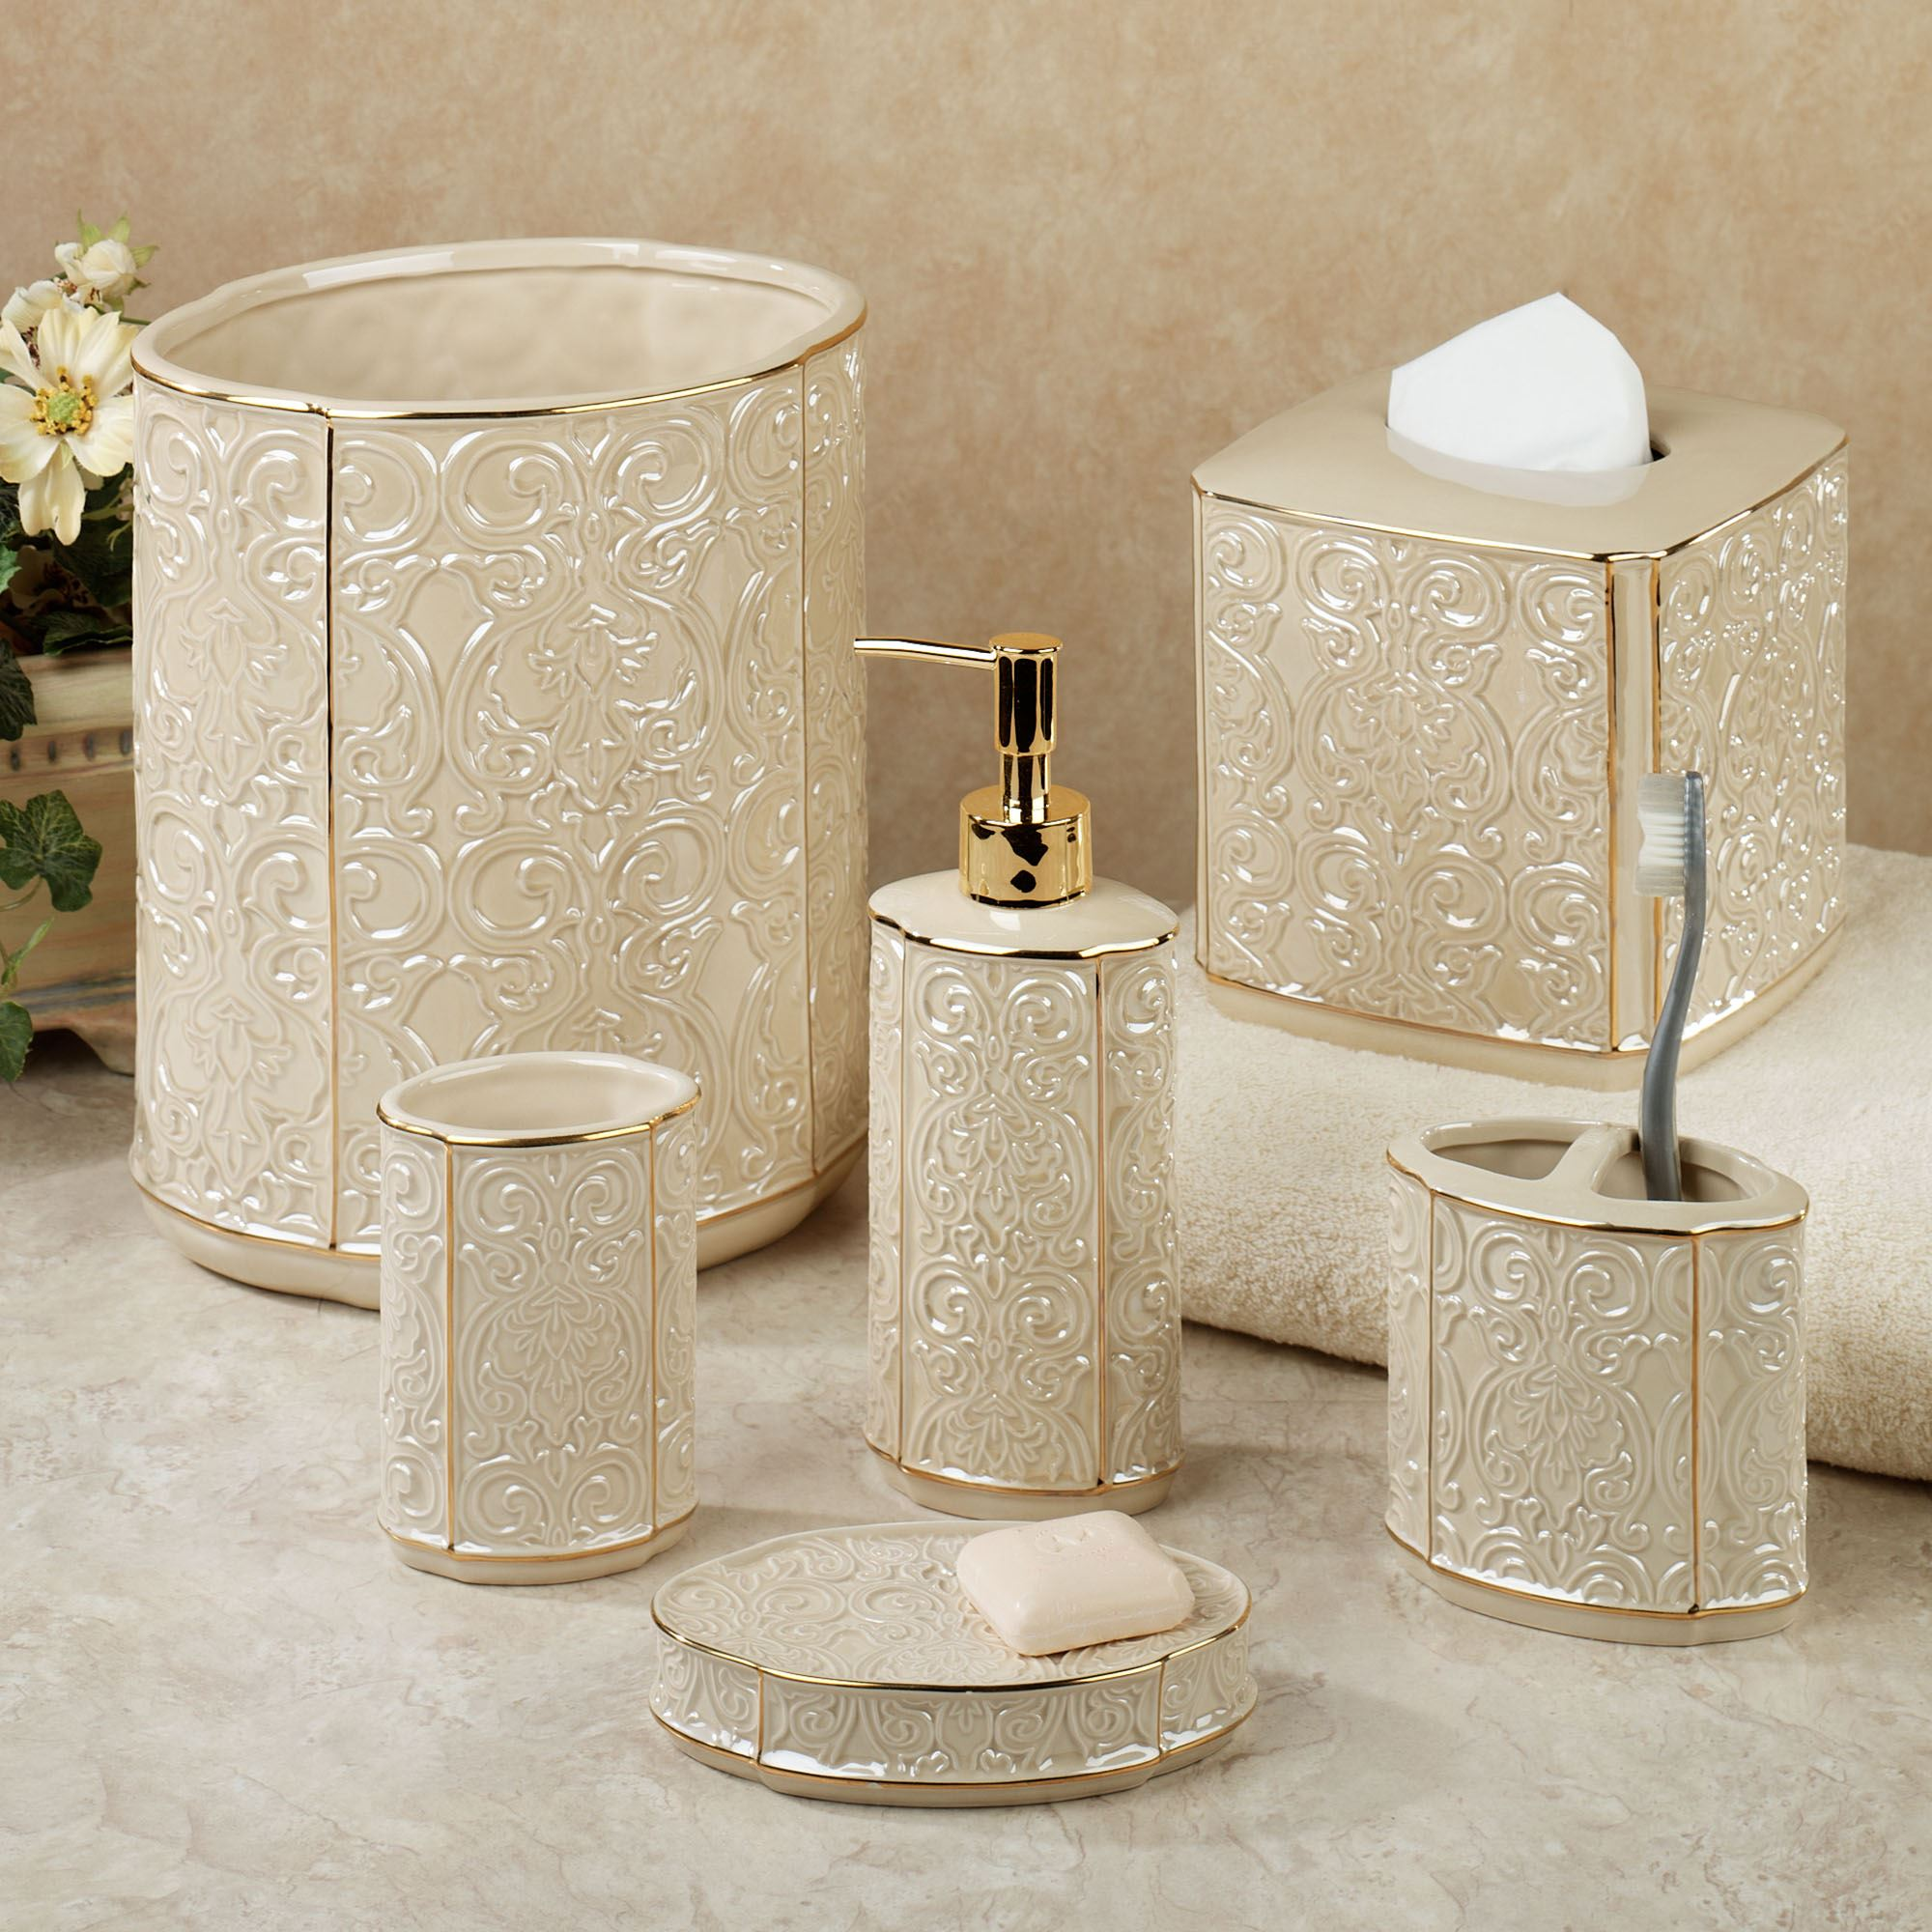 Furla cream damask ceramic bath accessories for Ceramic bathroom accessories sets